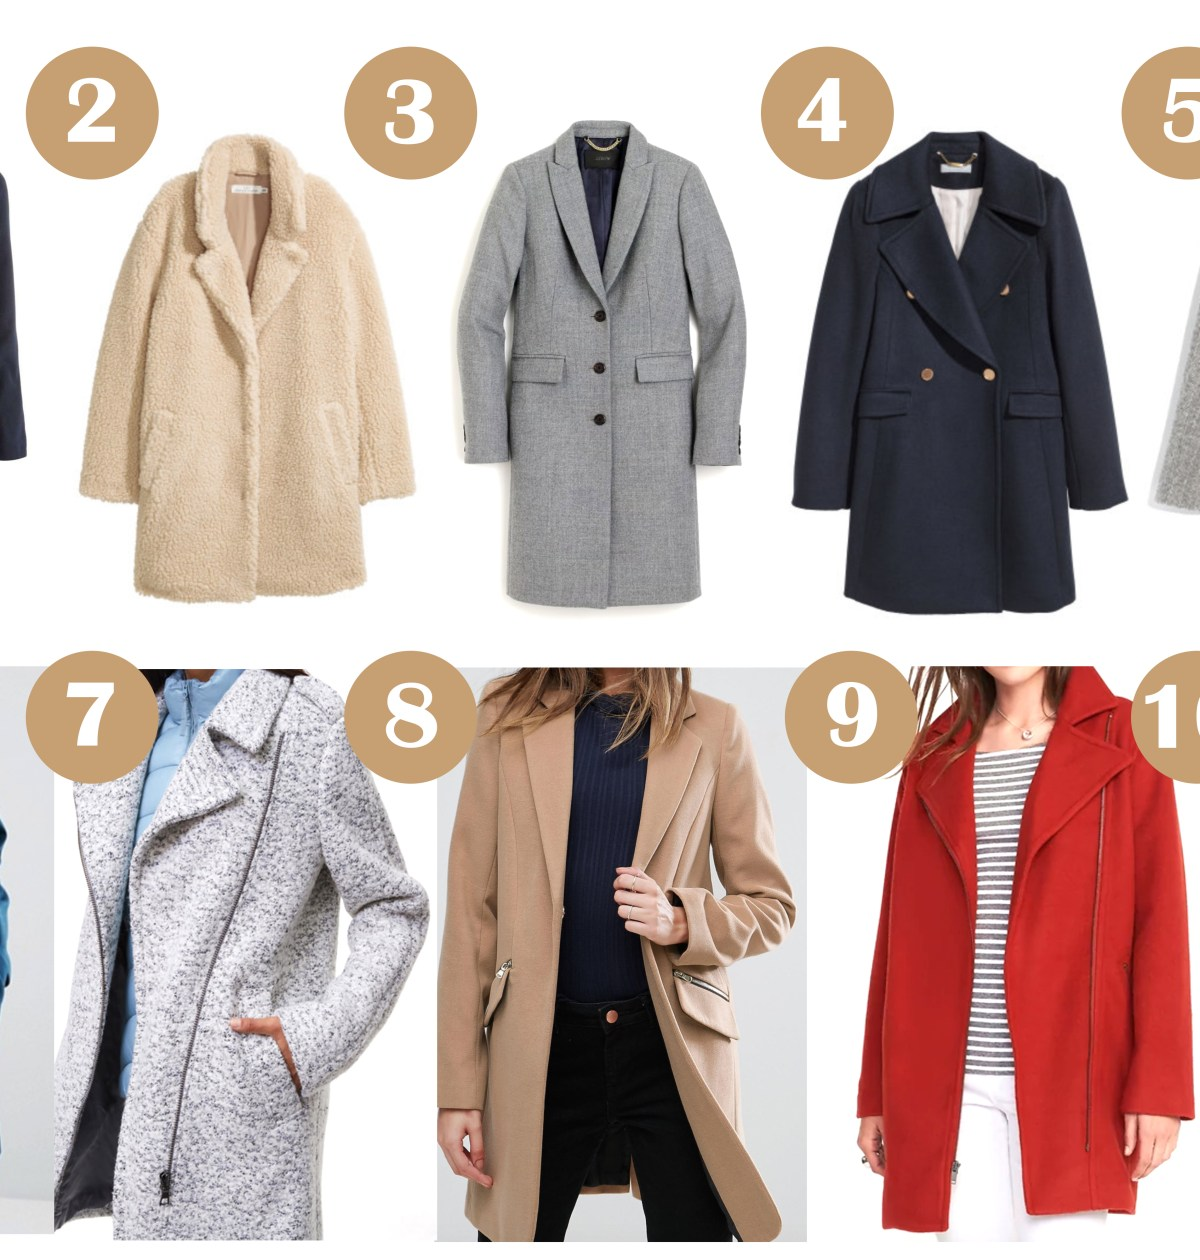 10 Fashionable & Warm Coats For Winter - www.viciloves.com - @viciloves1